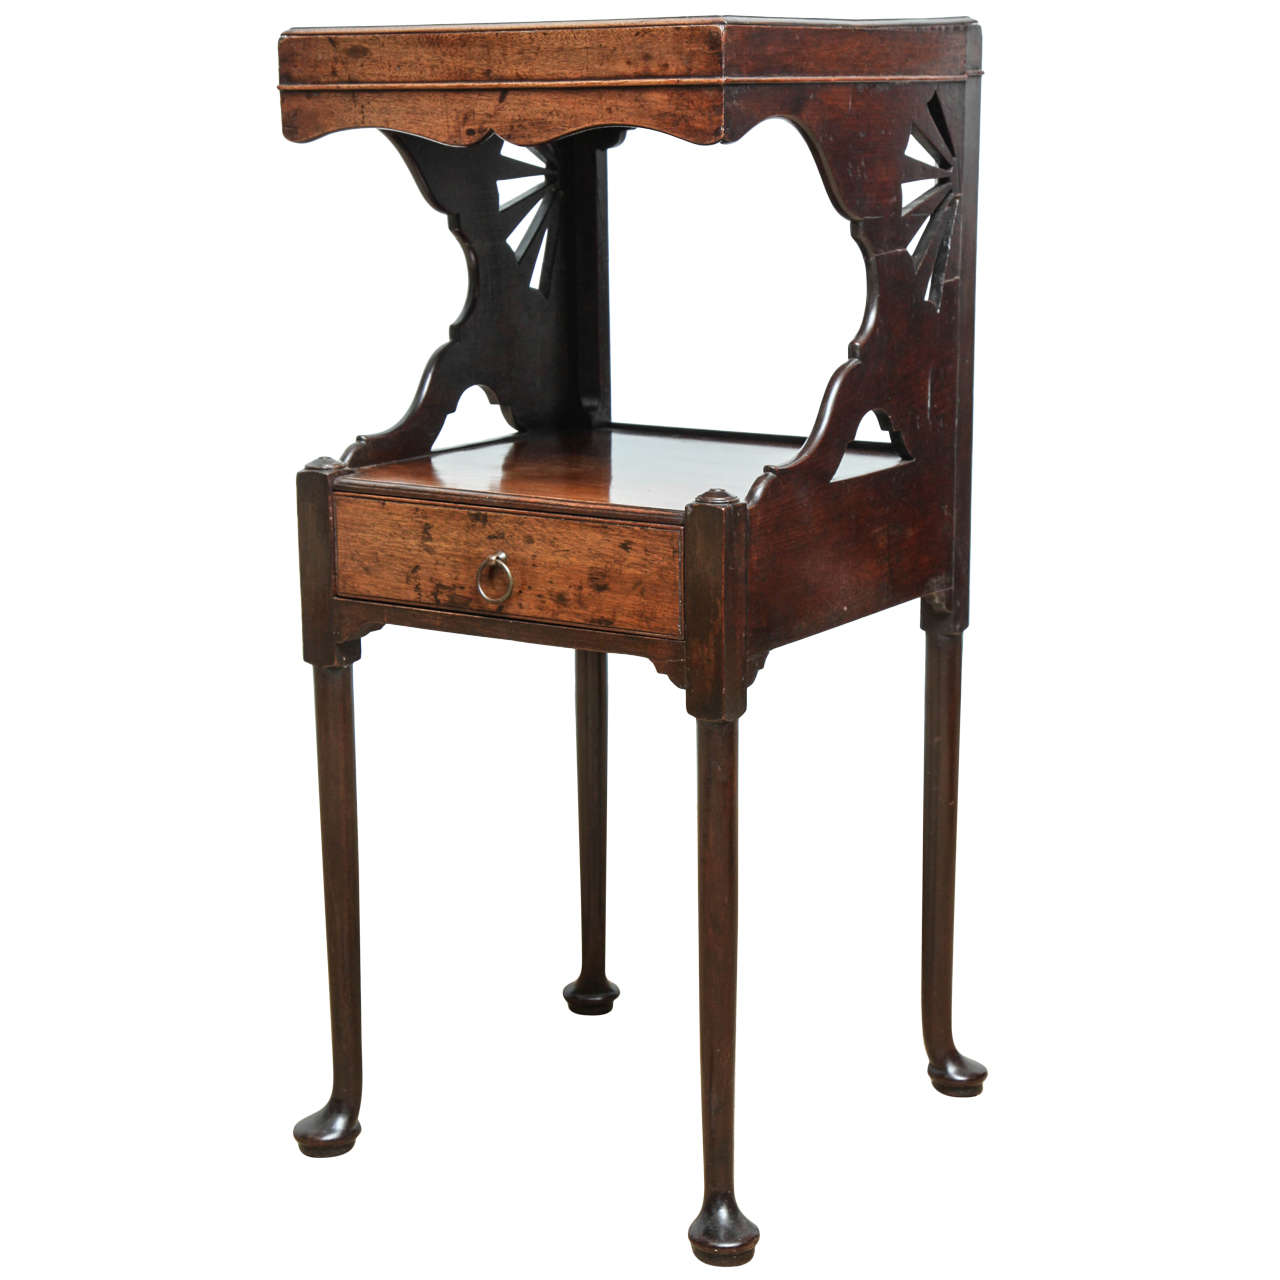 most unusual english or scottish georgian bedside table at 1stdibs